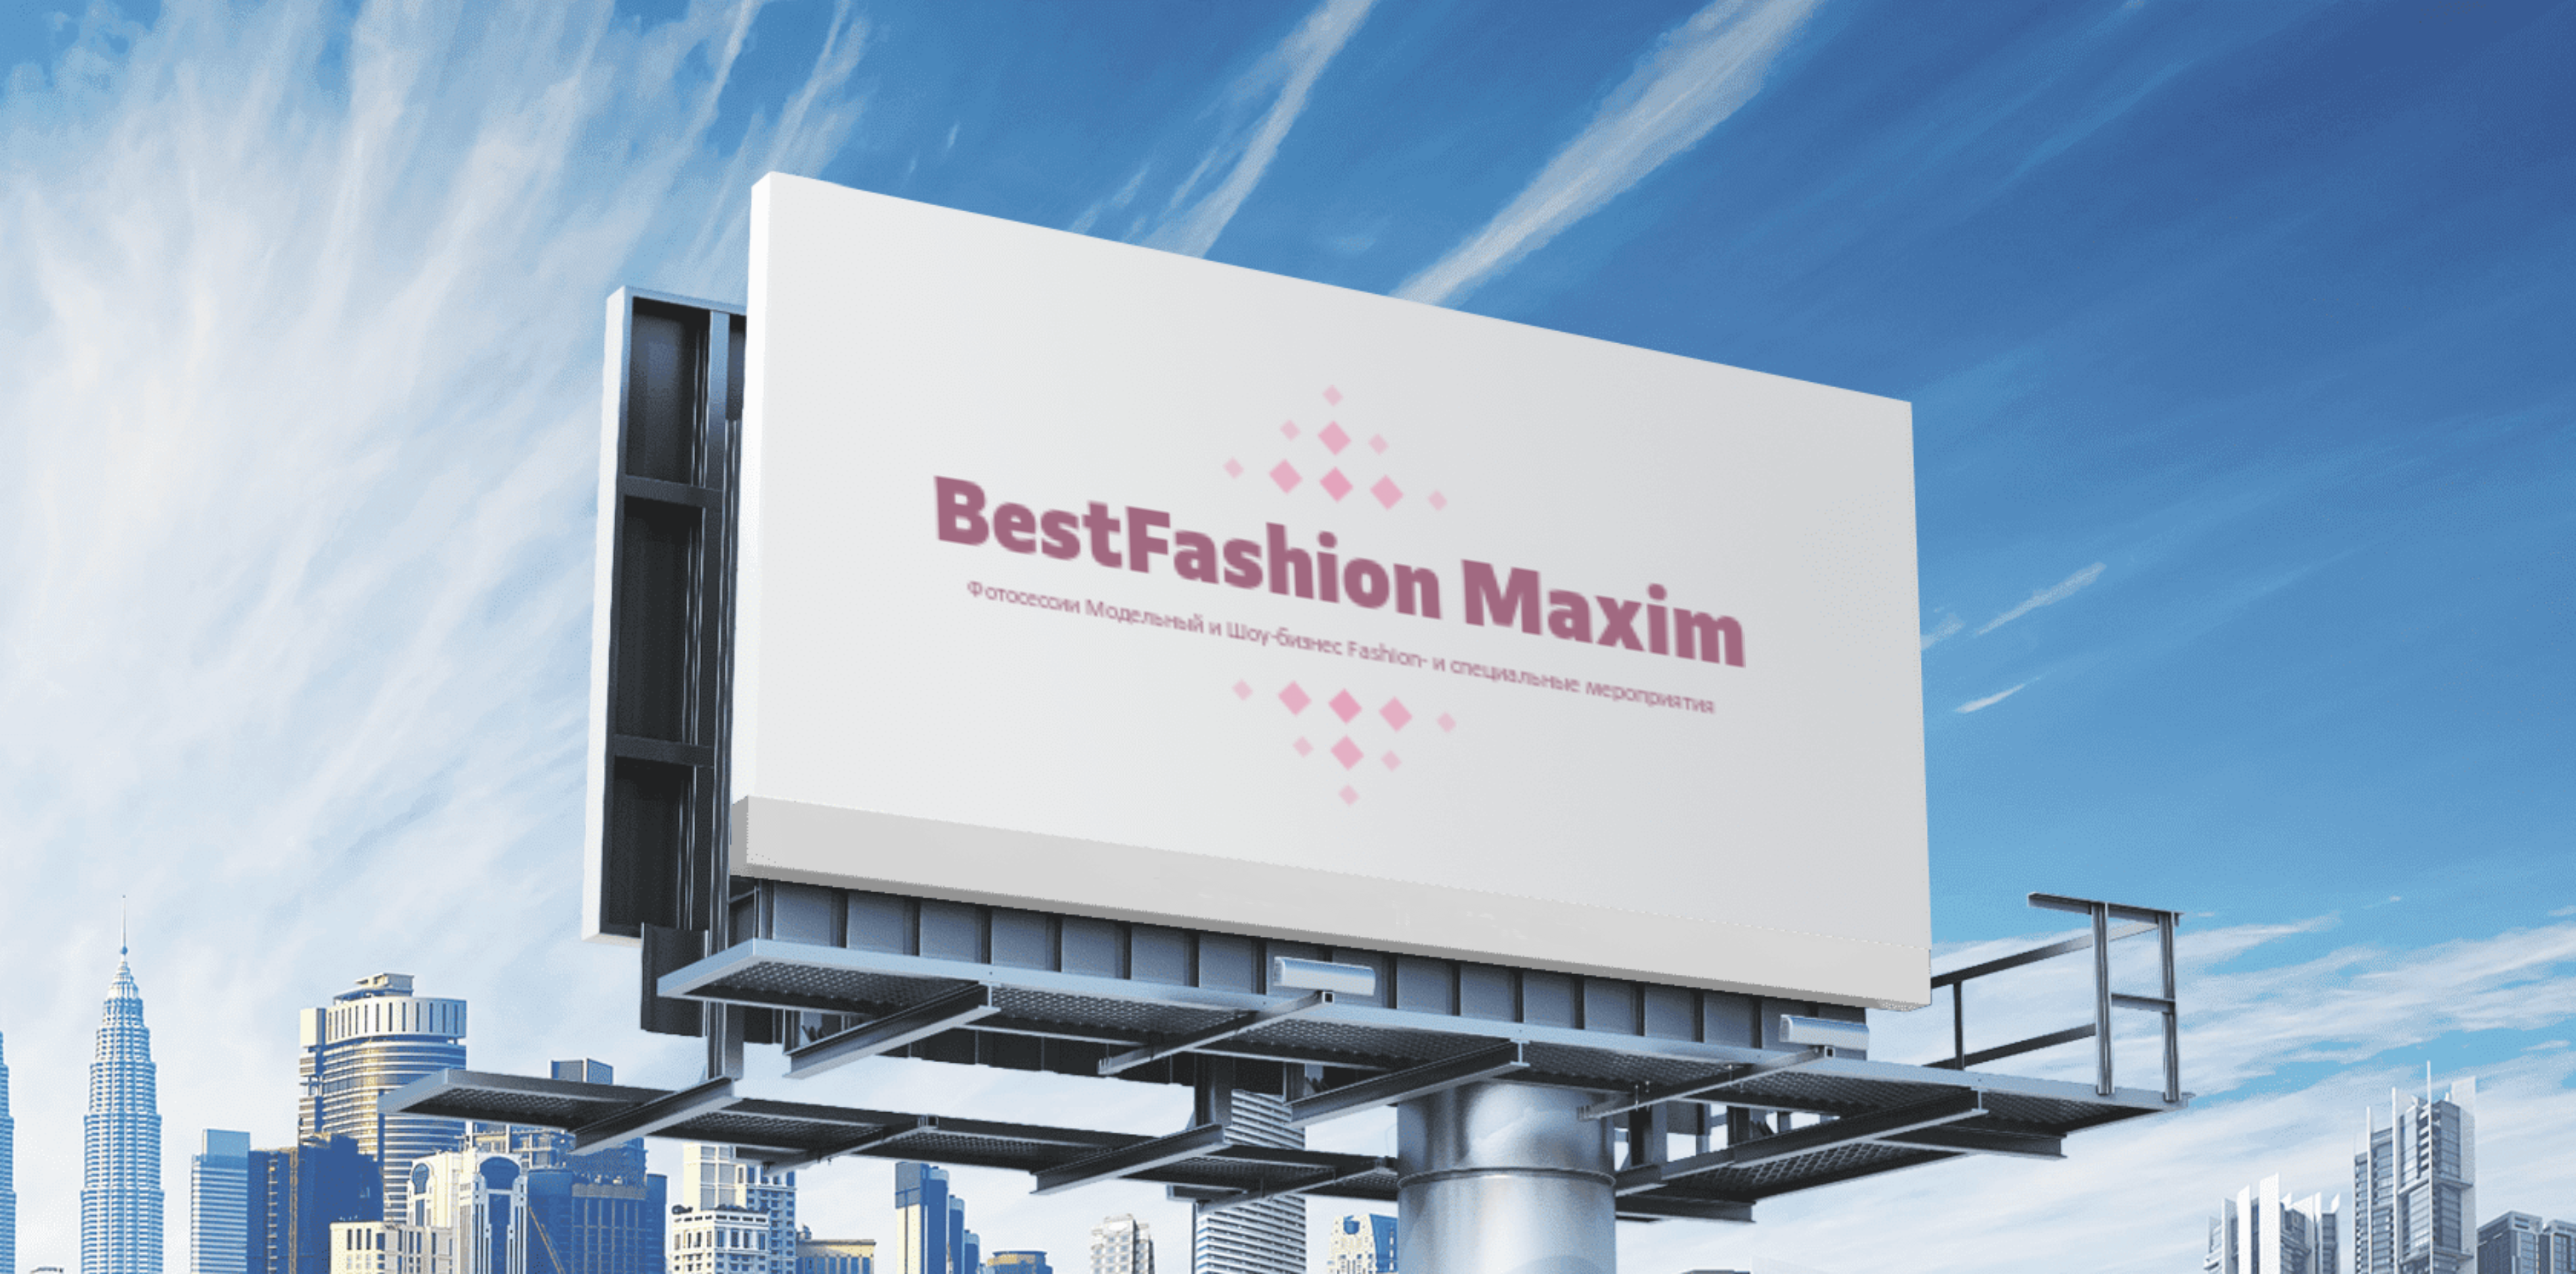 BestFashion Maxim